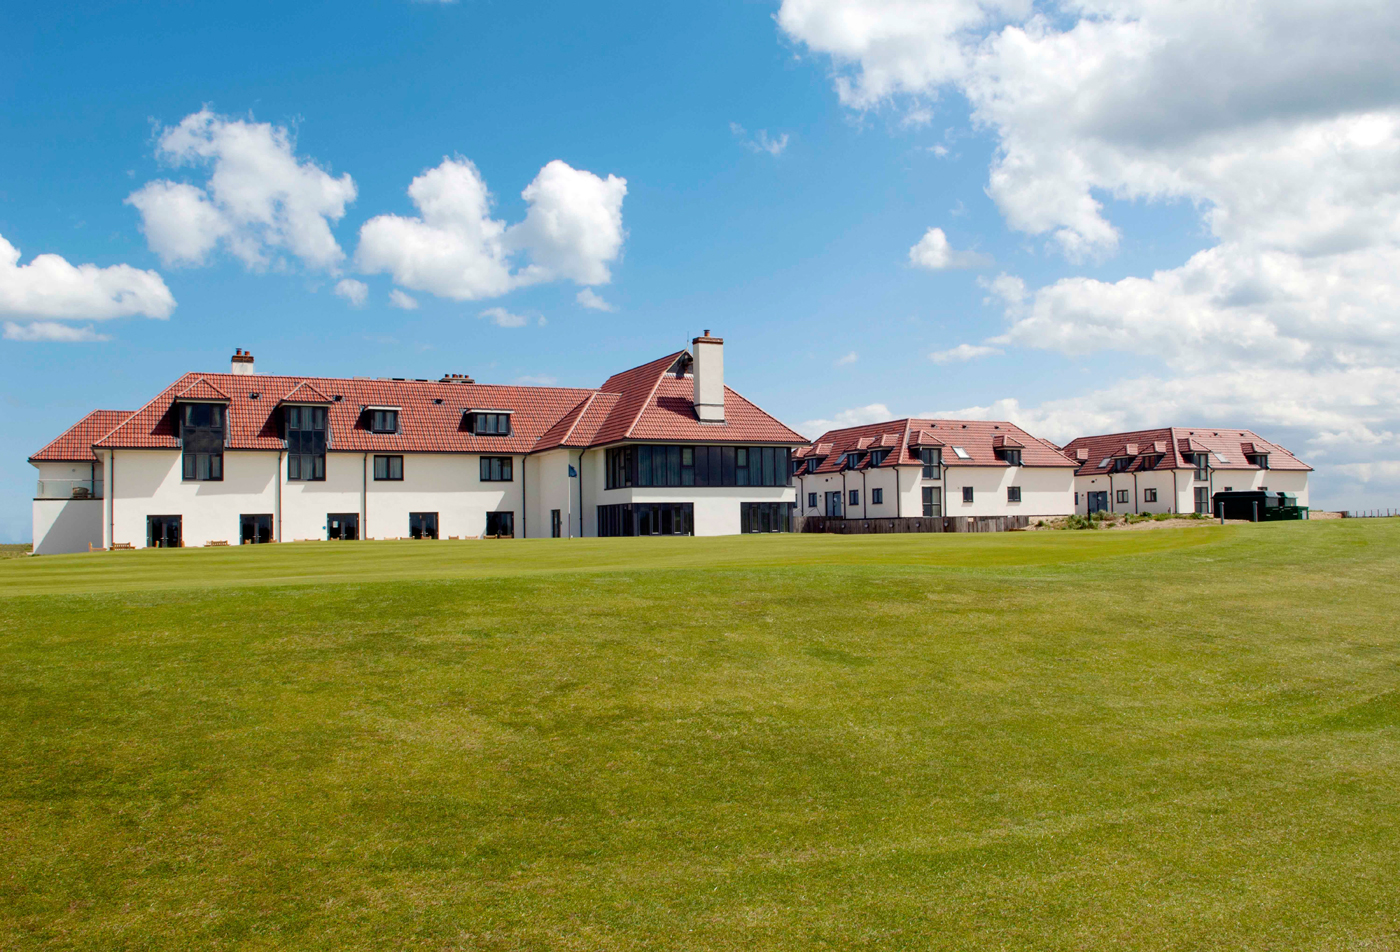 historic prince u0026 39 s golf club opens new luxurious lodge